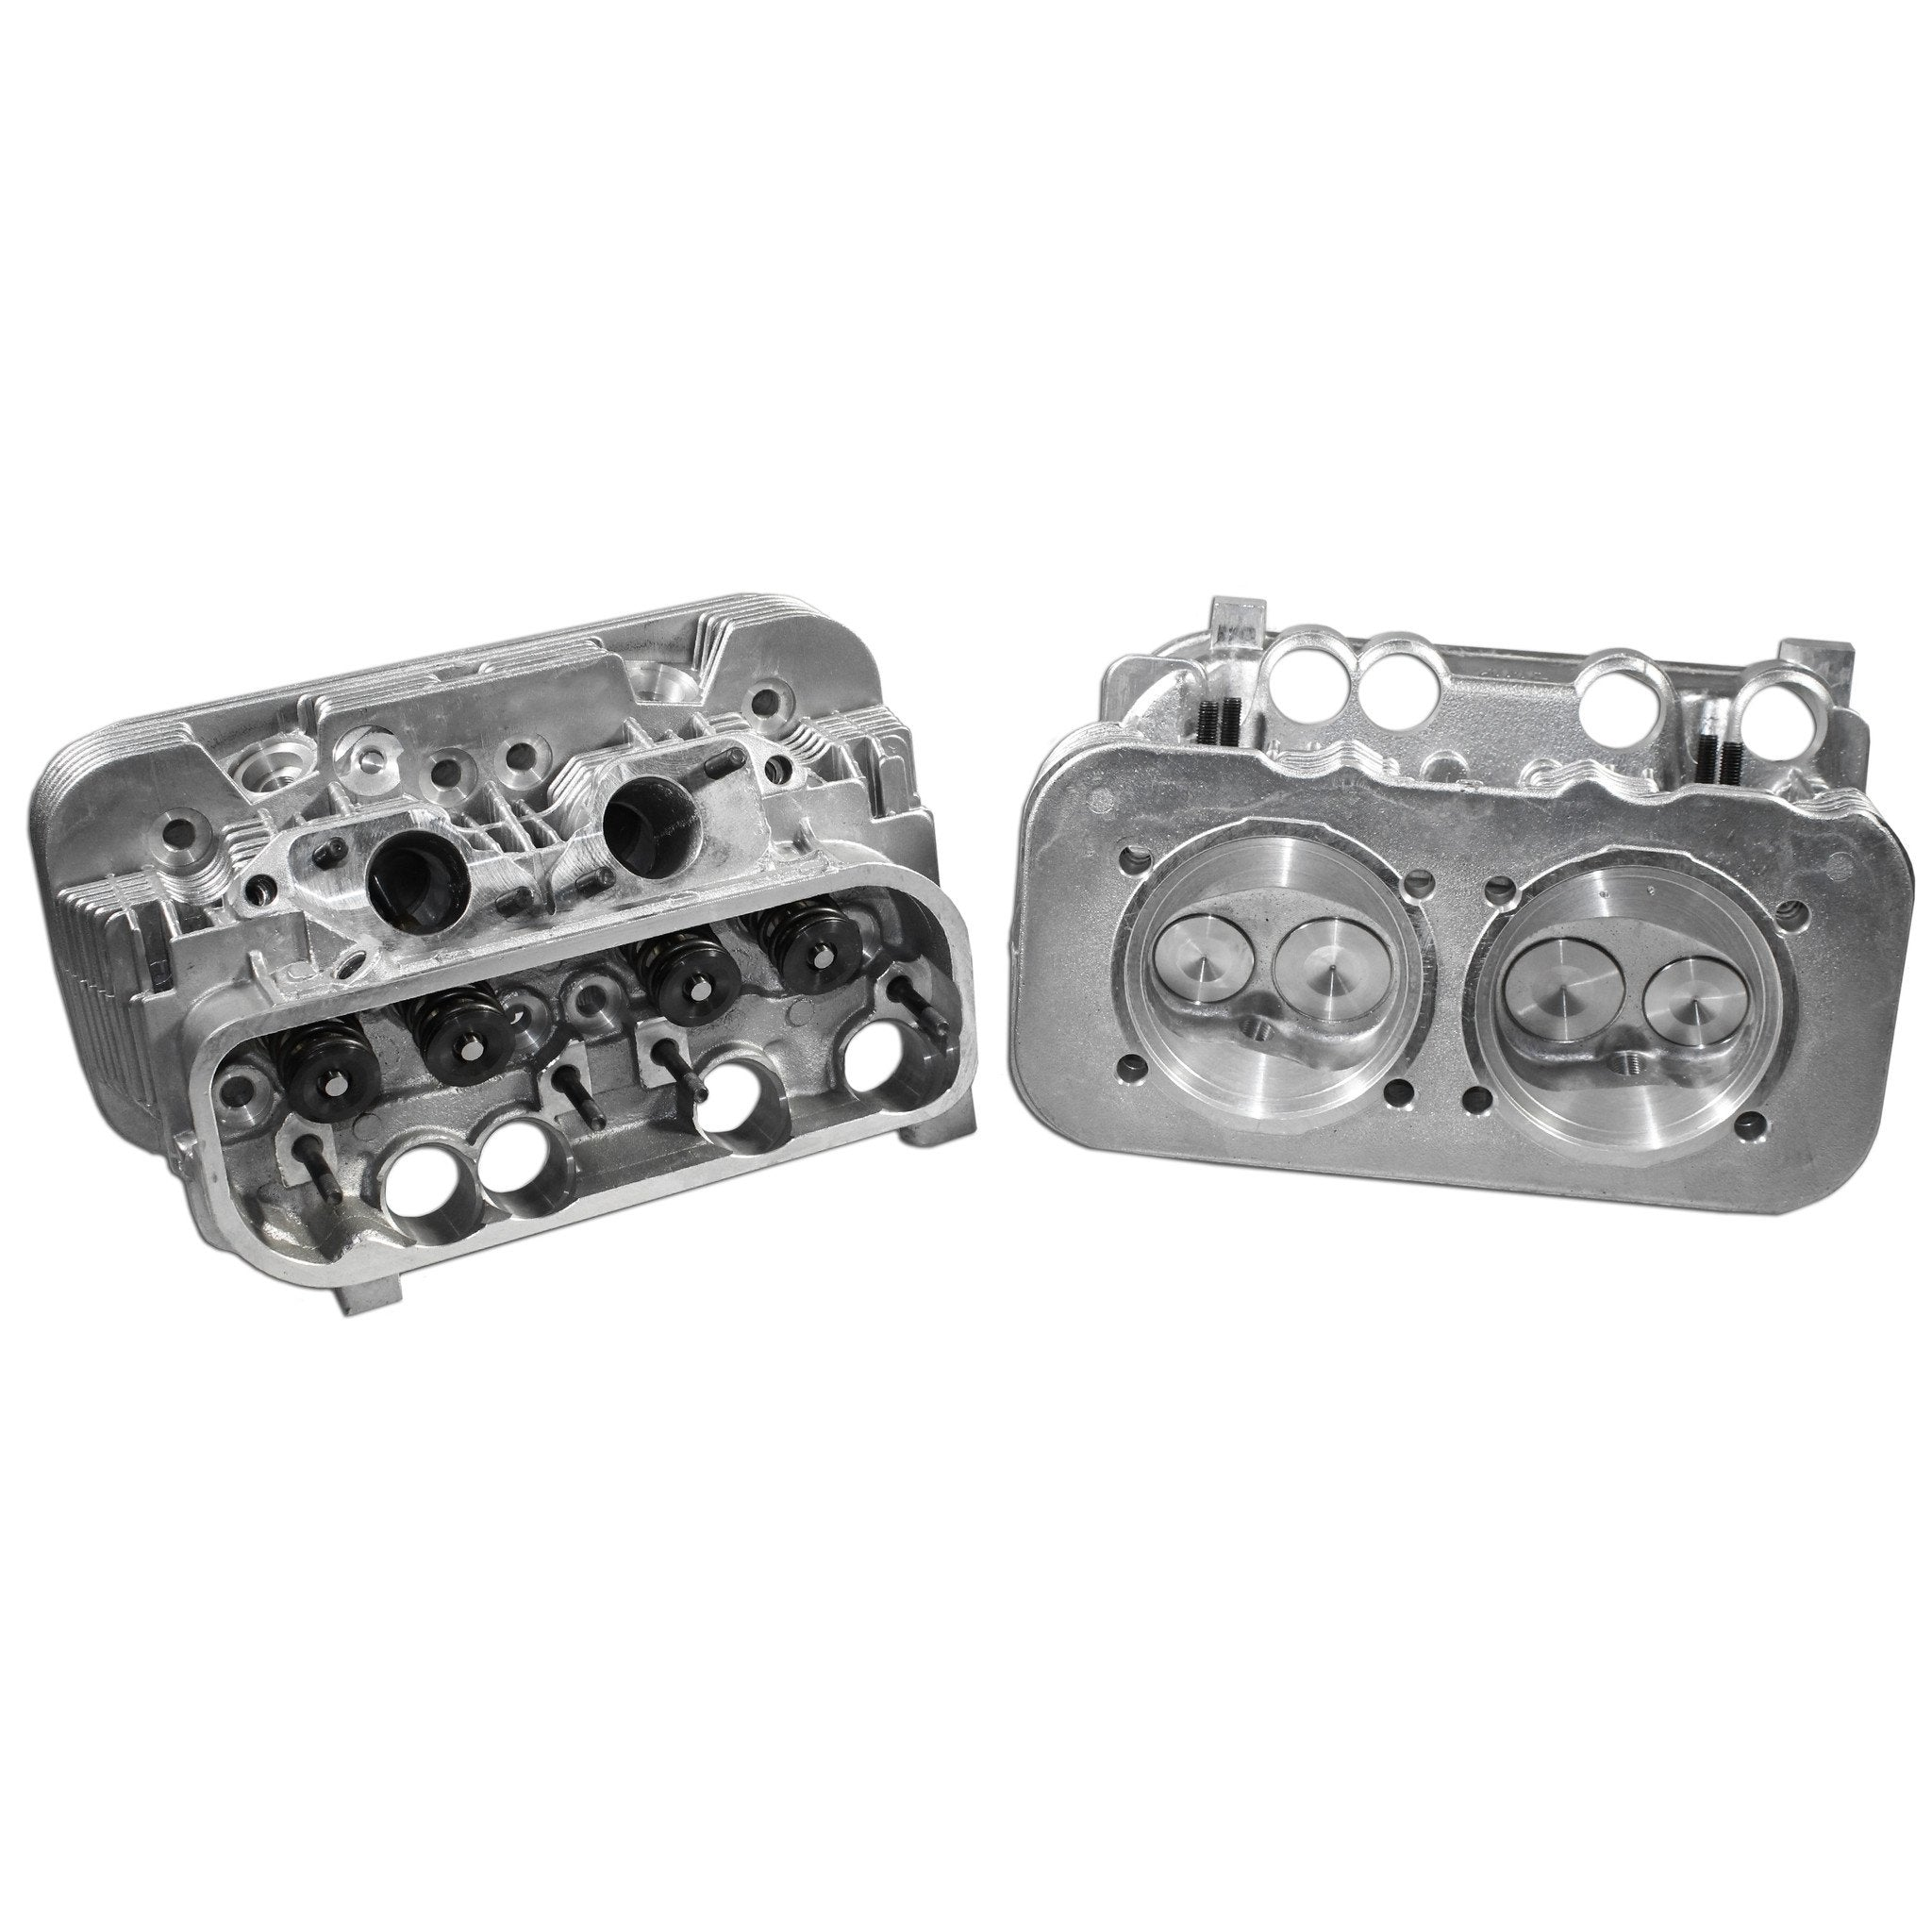 Set of VW Type 4 Porsche 914 Performance Cylinder Heads, 42X36 - LJ  Air-Cooled Engines